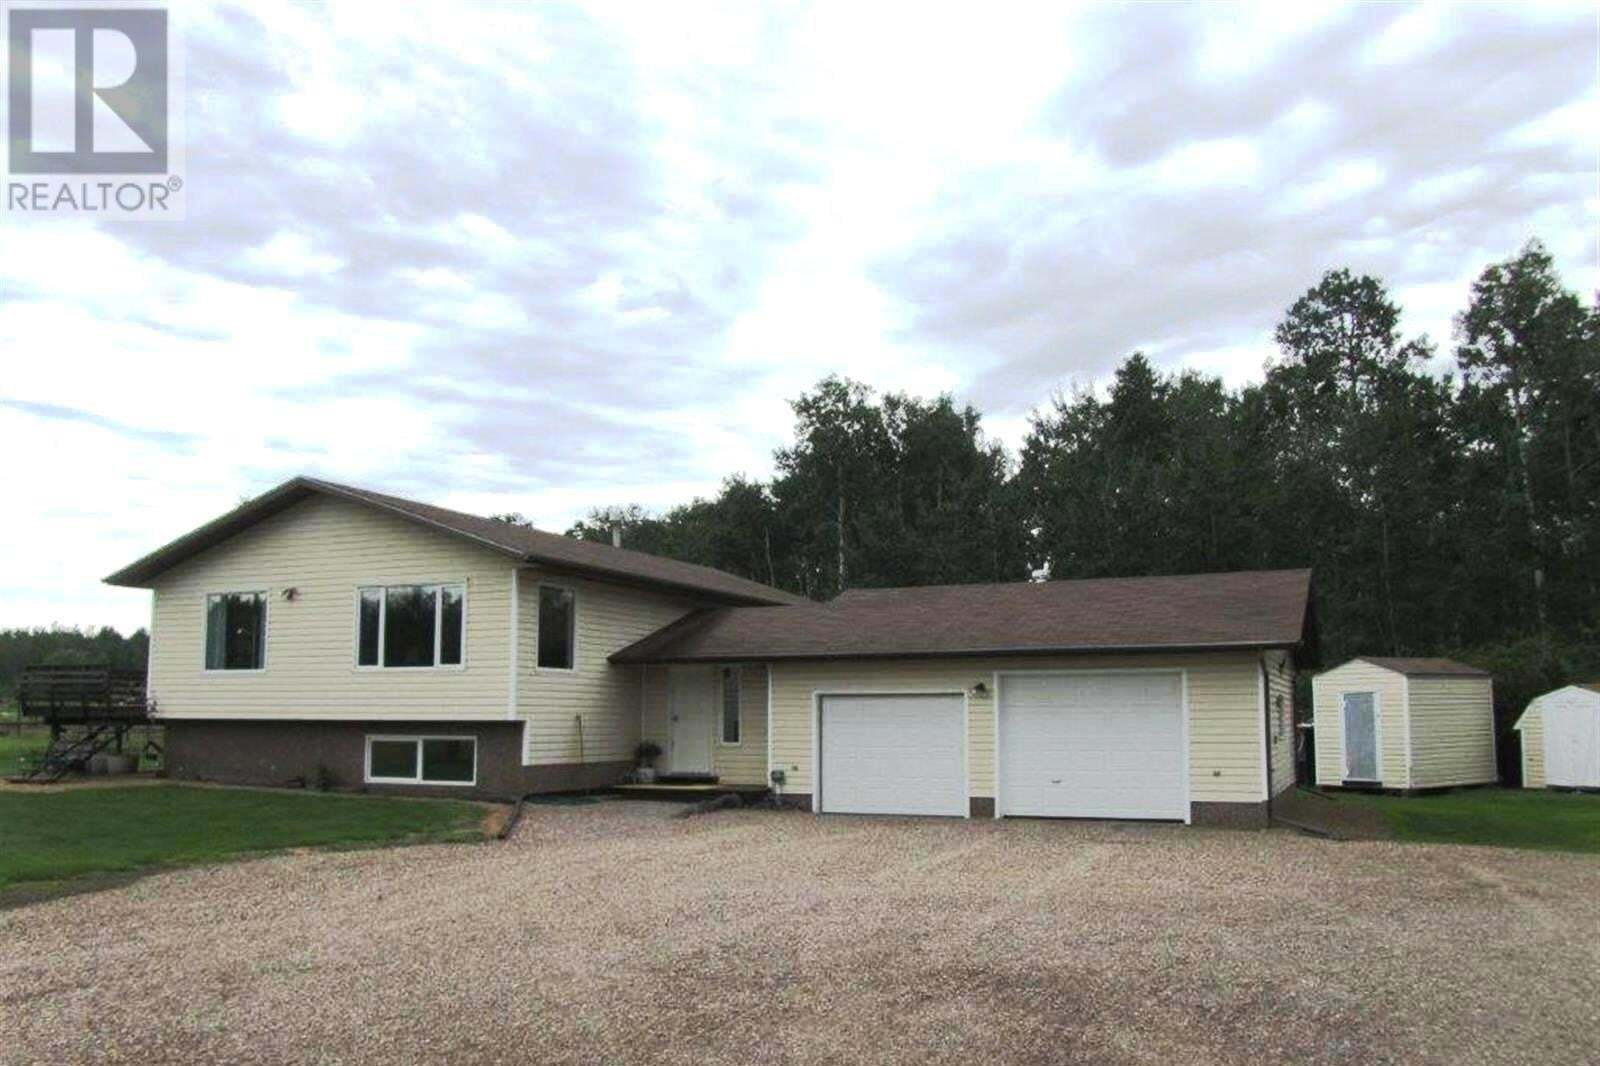 House for sale at 20 Acres, 12 Kms South Of Meadow Lk Meadow Lake Rm No.588 Saskatchewan - MLS: SK818417